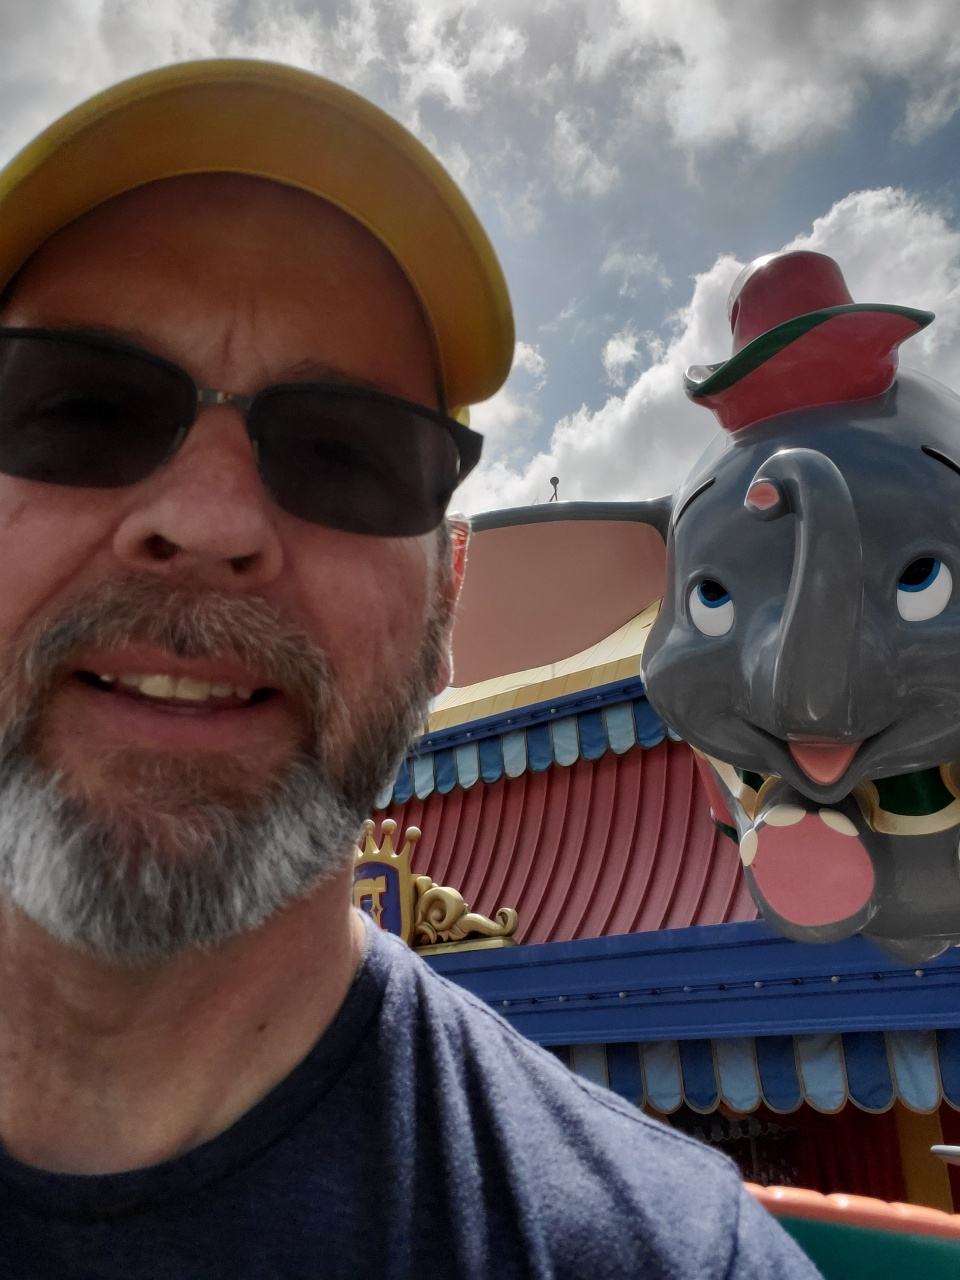 Dave with Dumbo flying in the background.